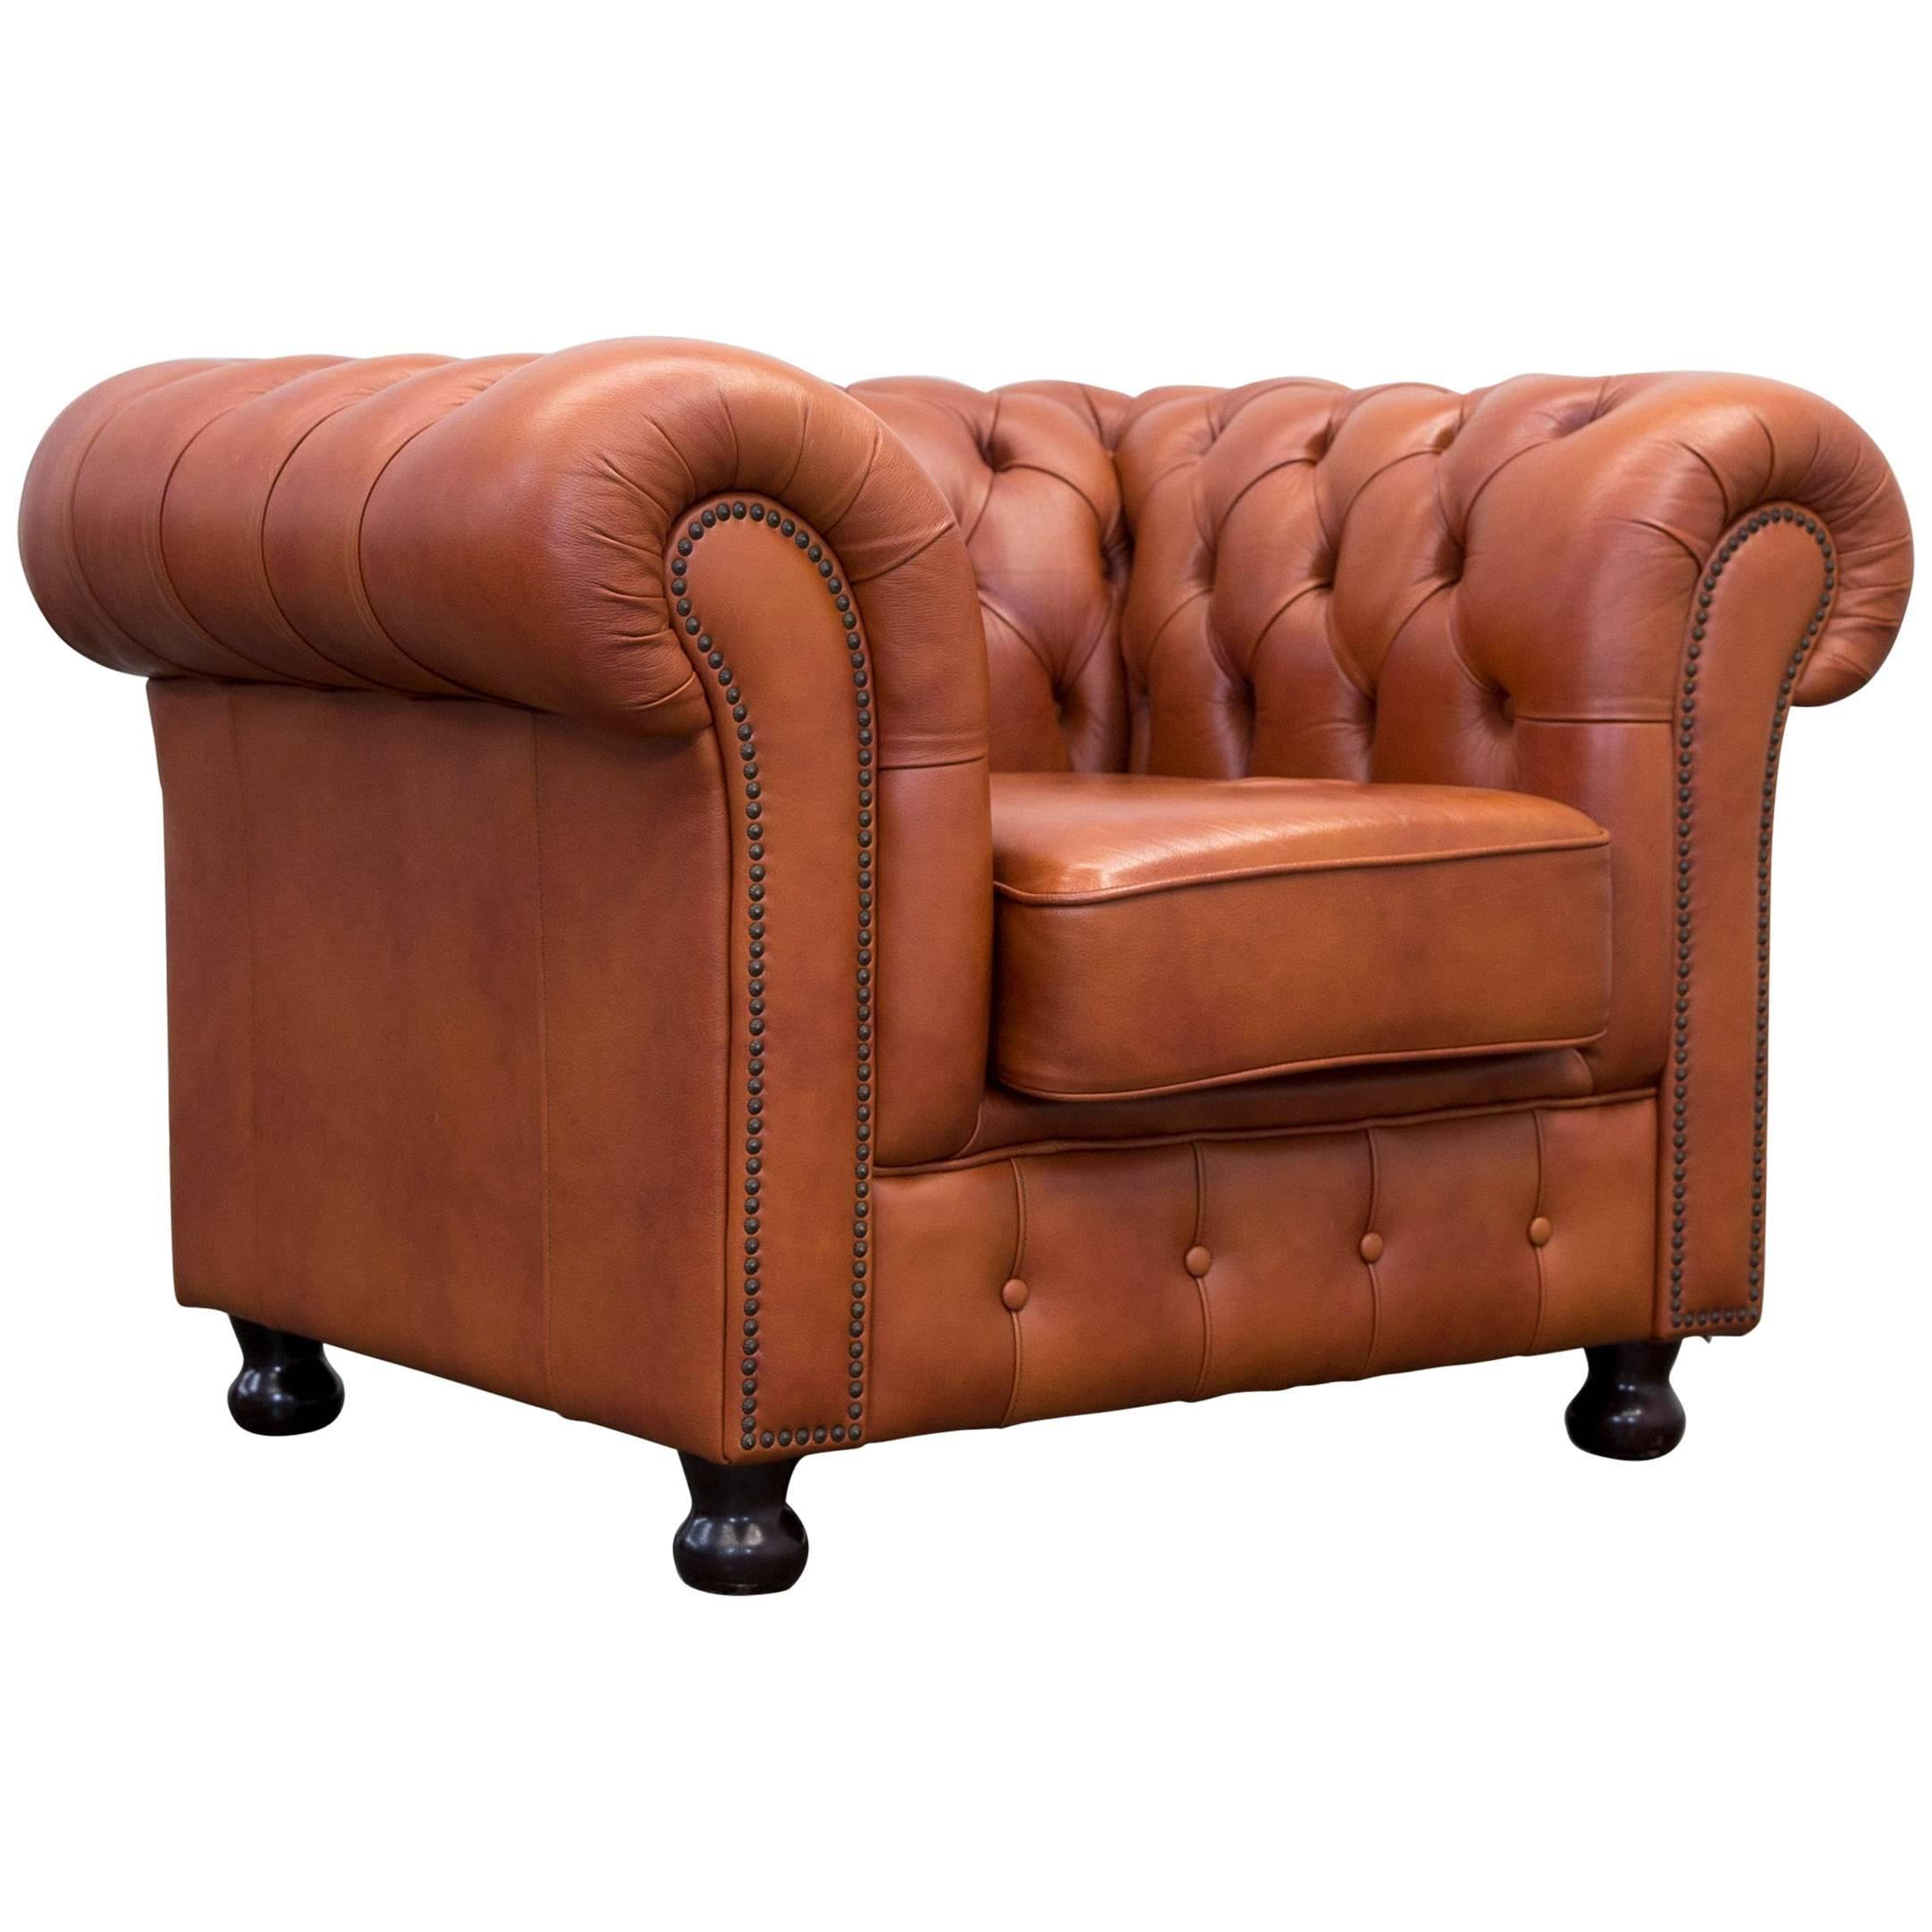 Original Chesterfield Armchair Authentic Leather Terracotta 1